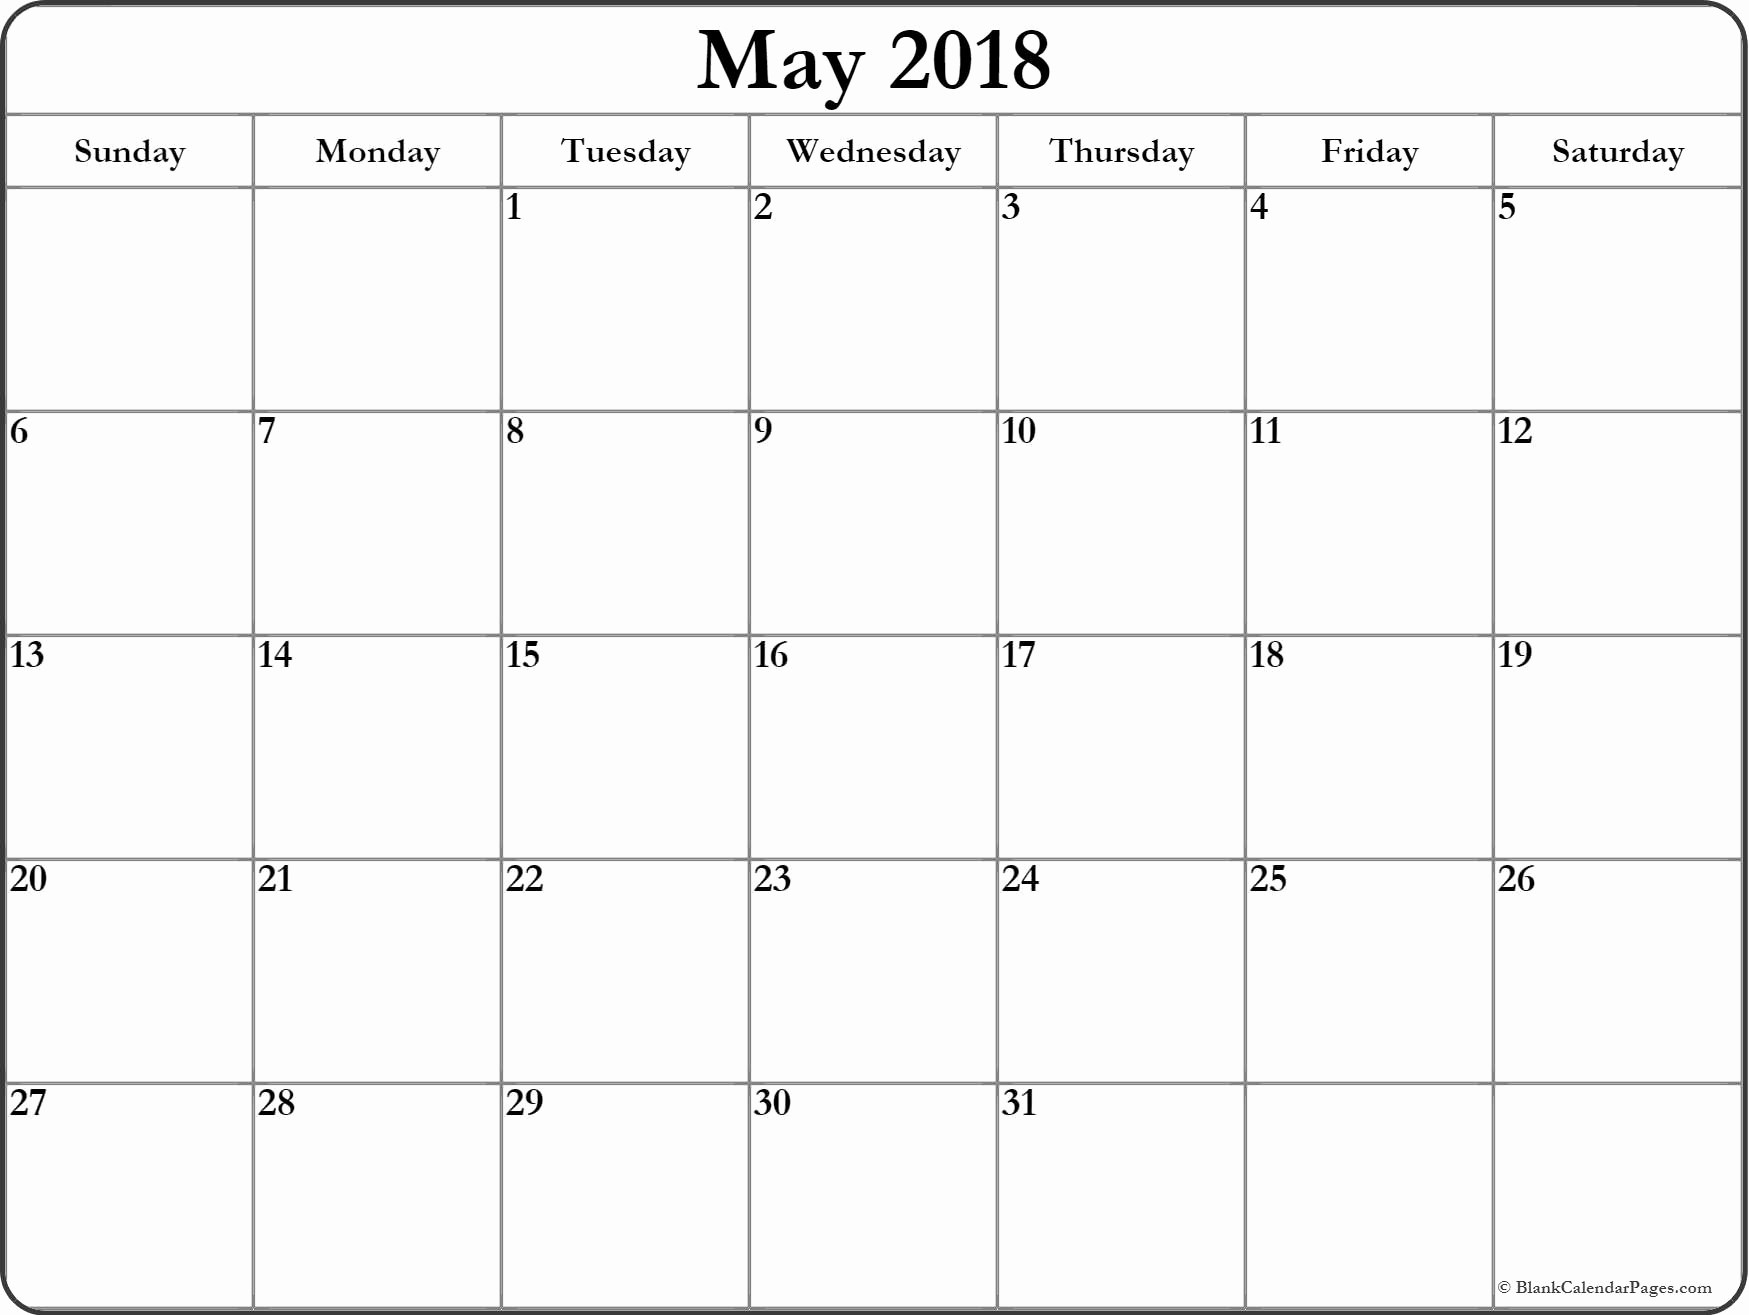 Free May 2018 Calendar Template Awesome May 2018 Blank Calendar Collection